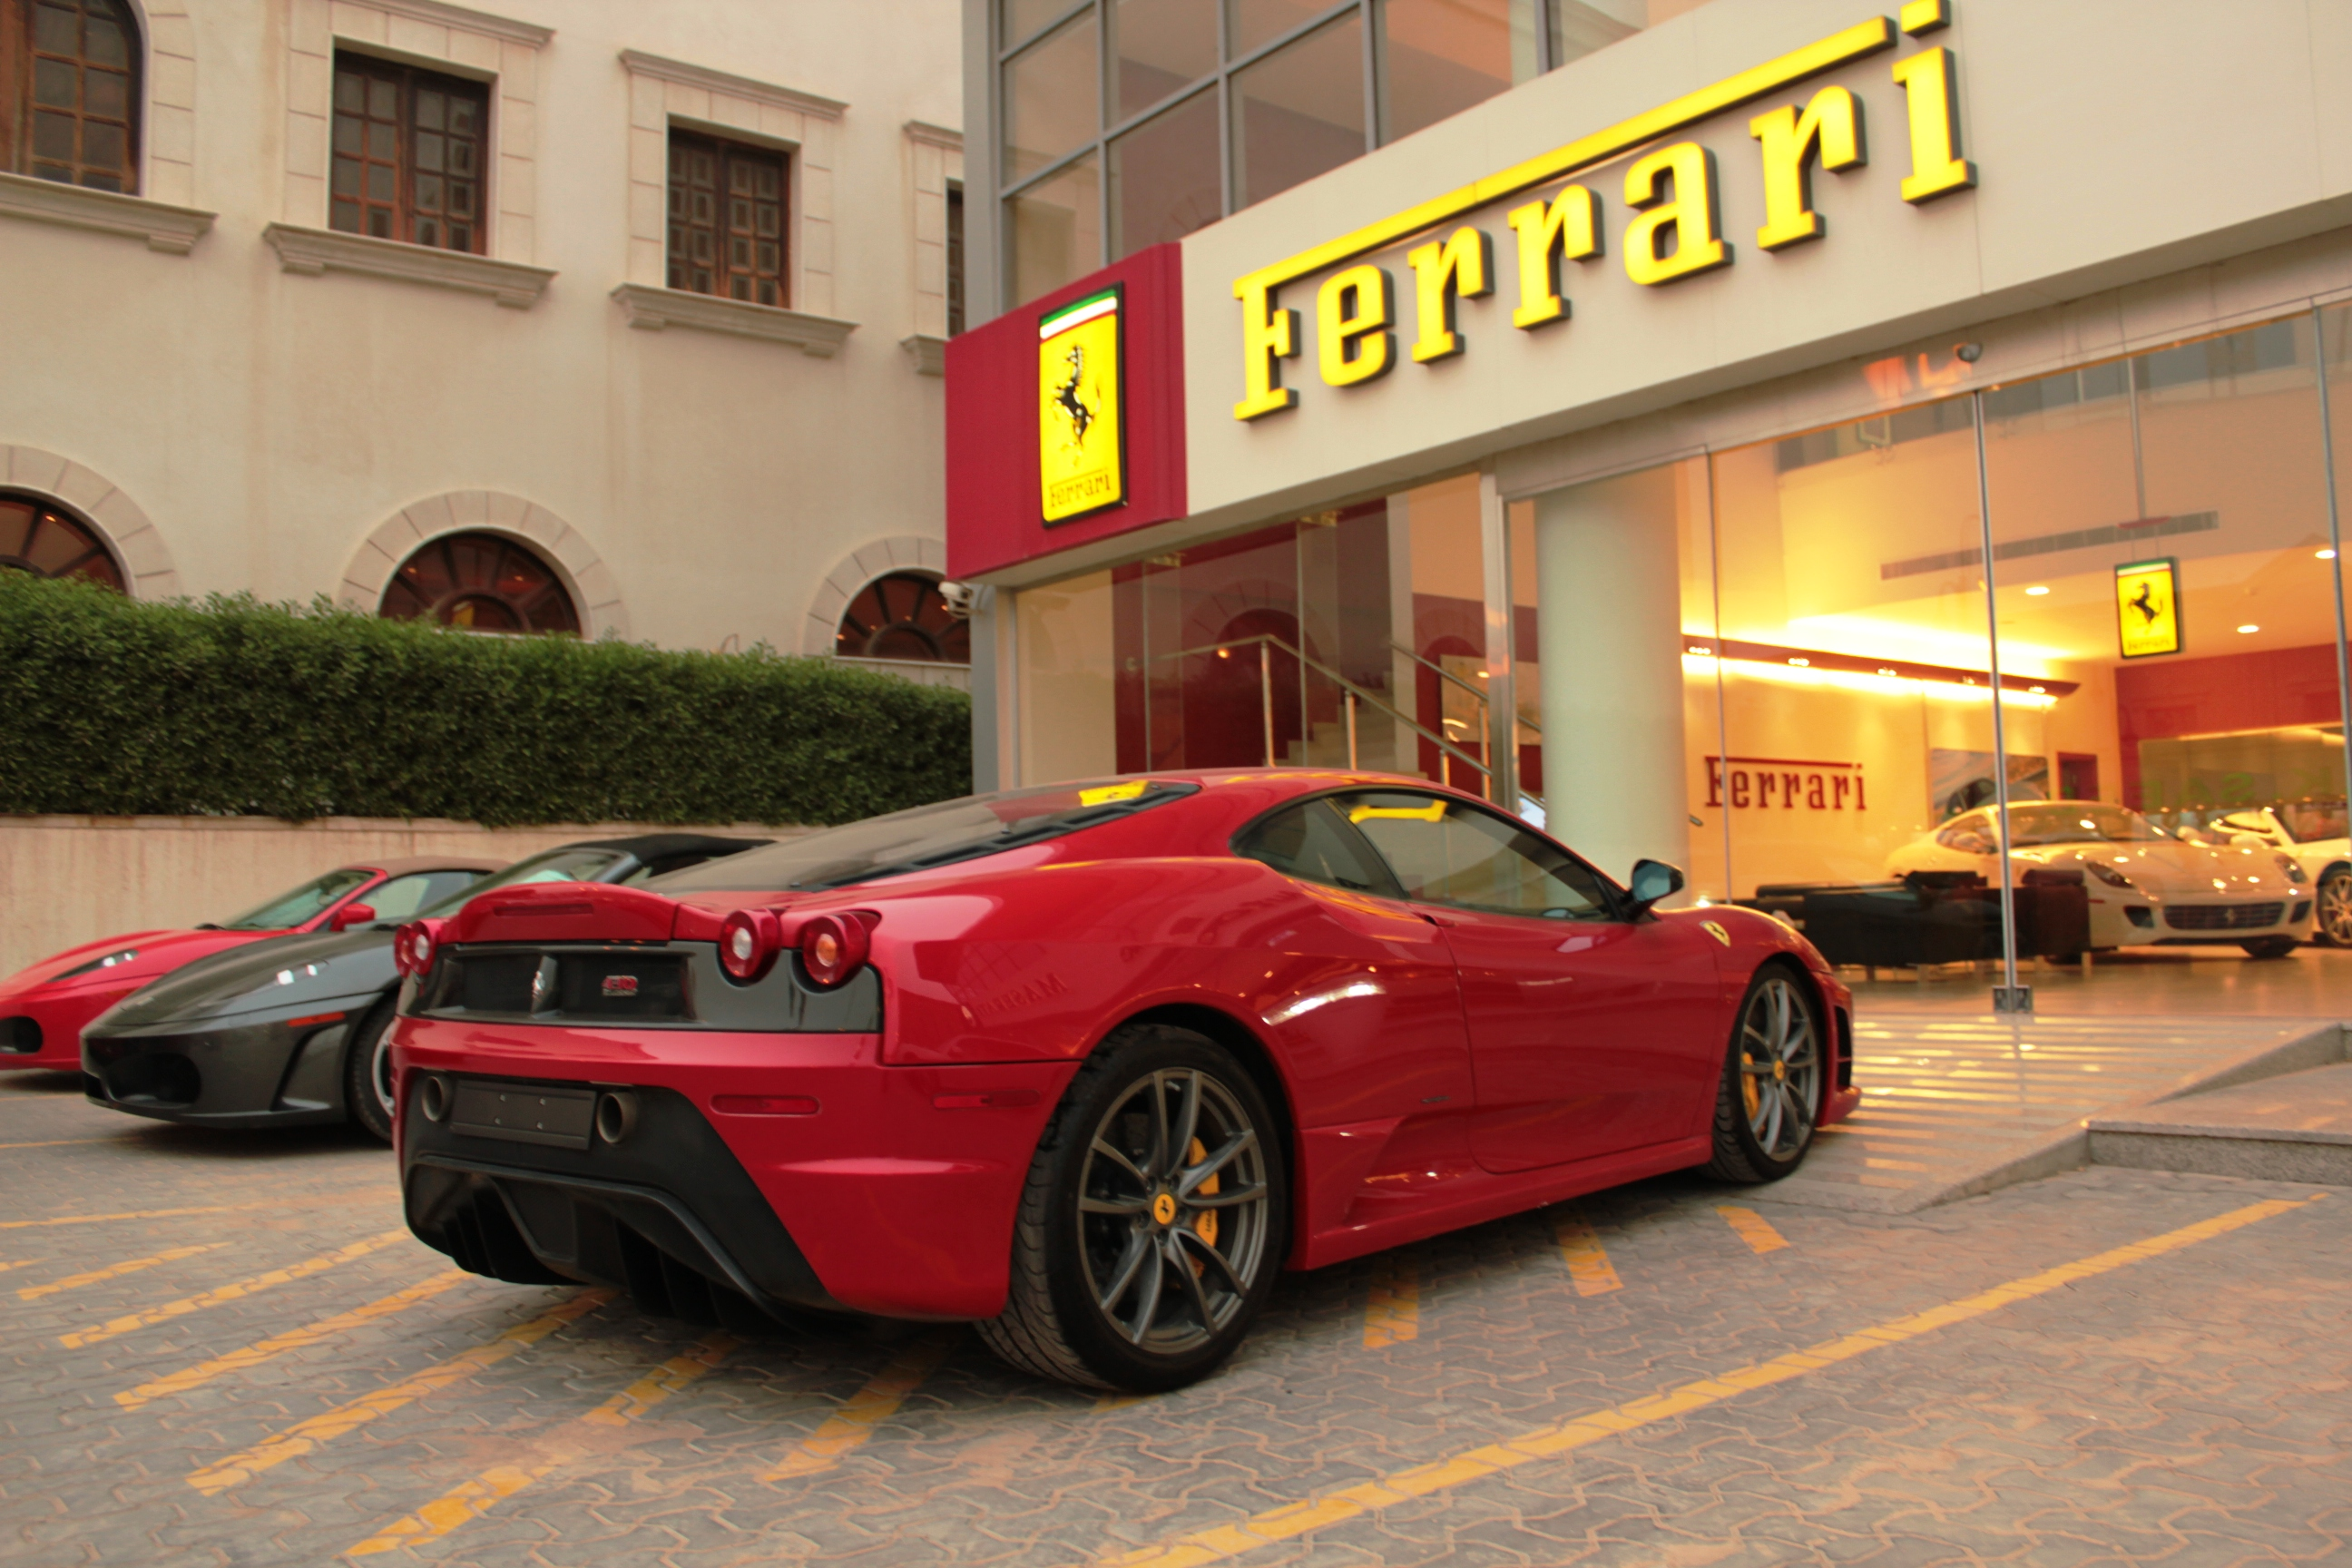 price all live new name driving up its to will the auto superfast ferrari news for